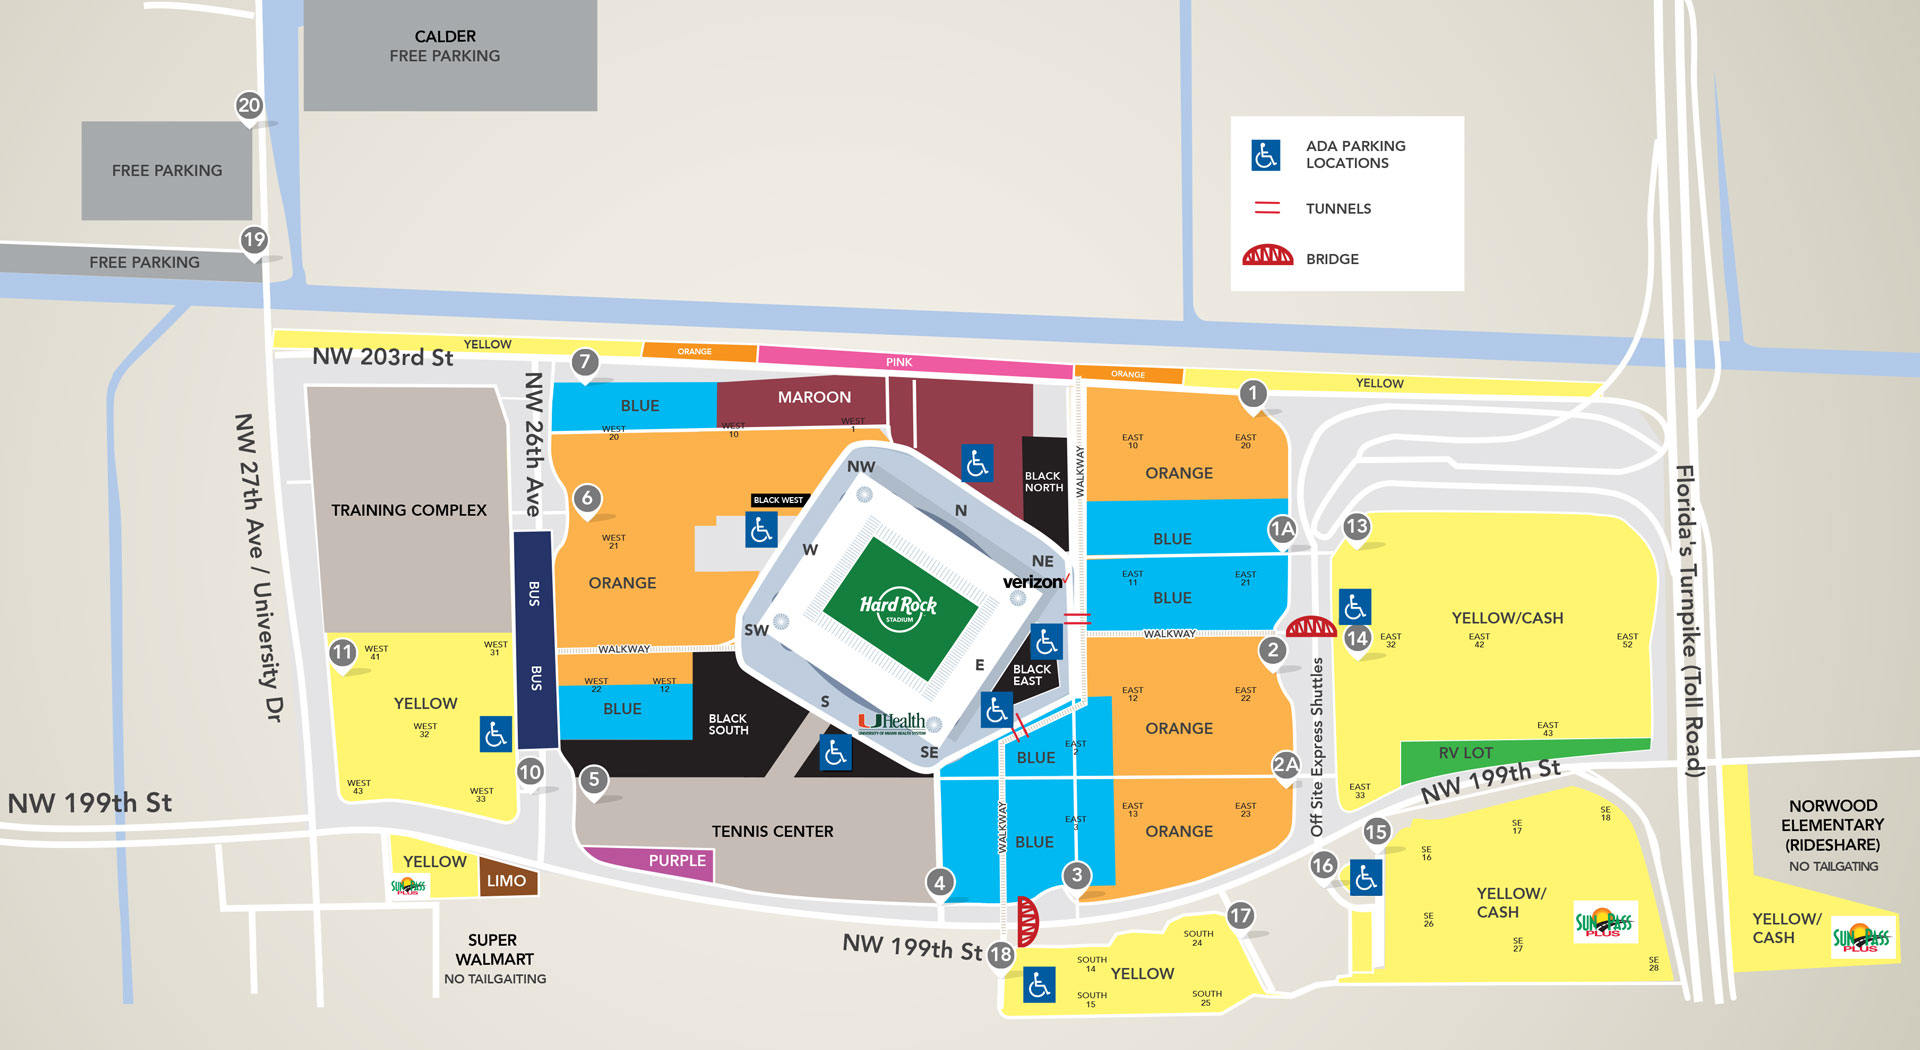 best hard rock stadium parking from $25 (2020) rates + reviews